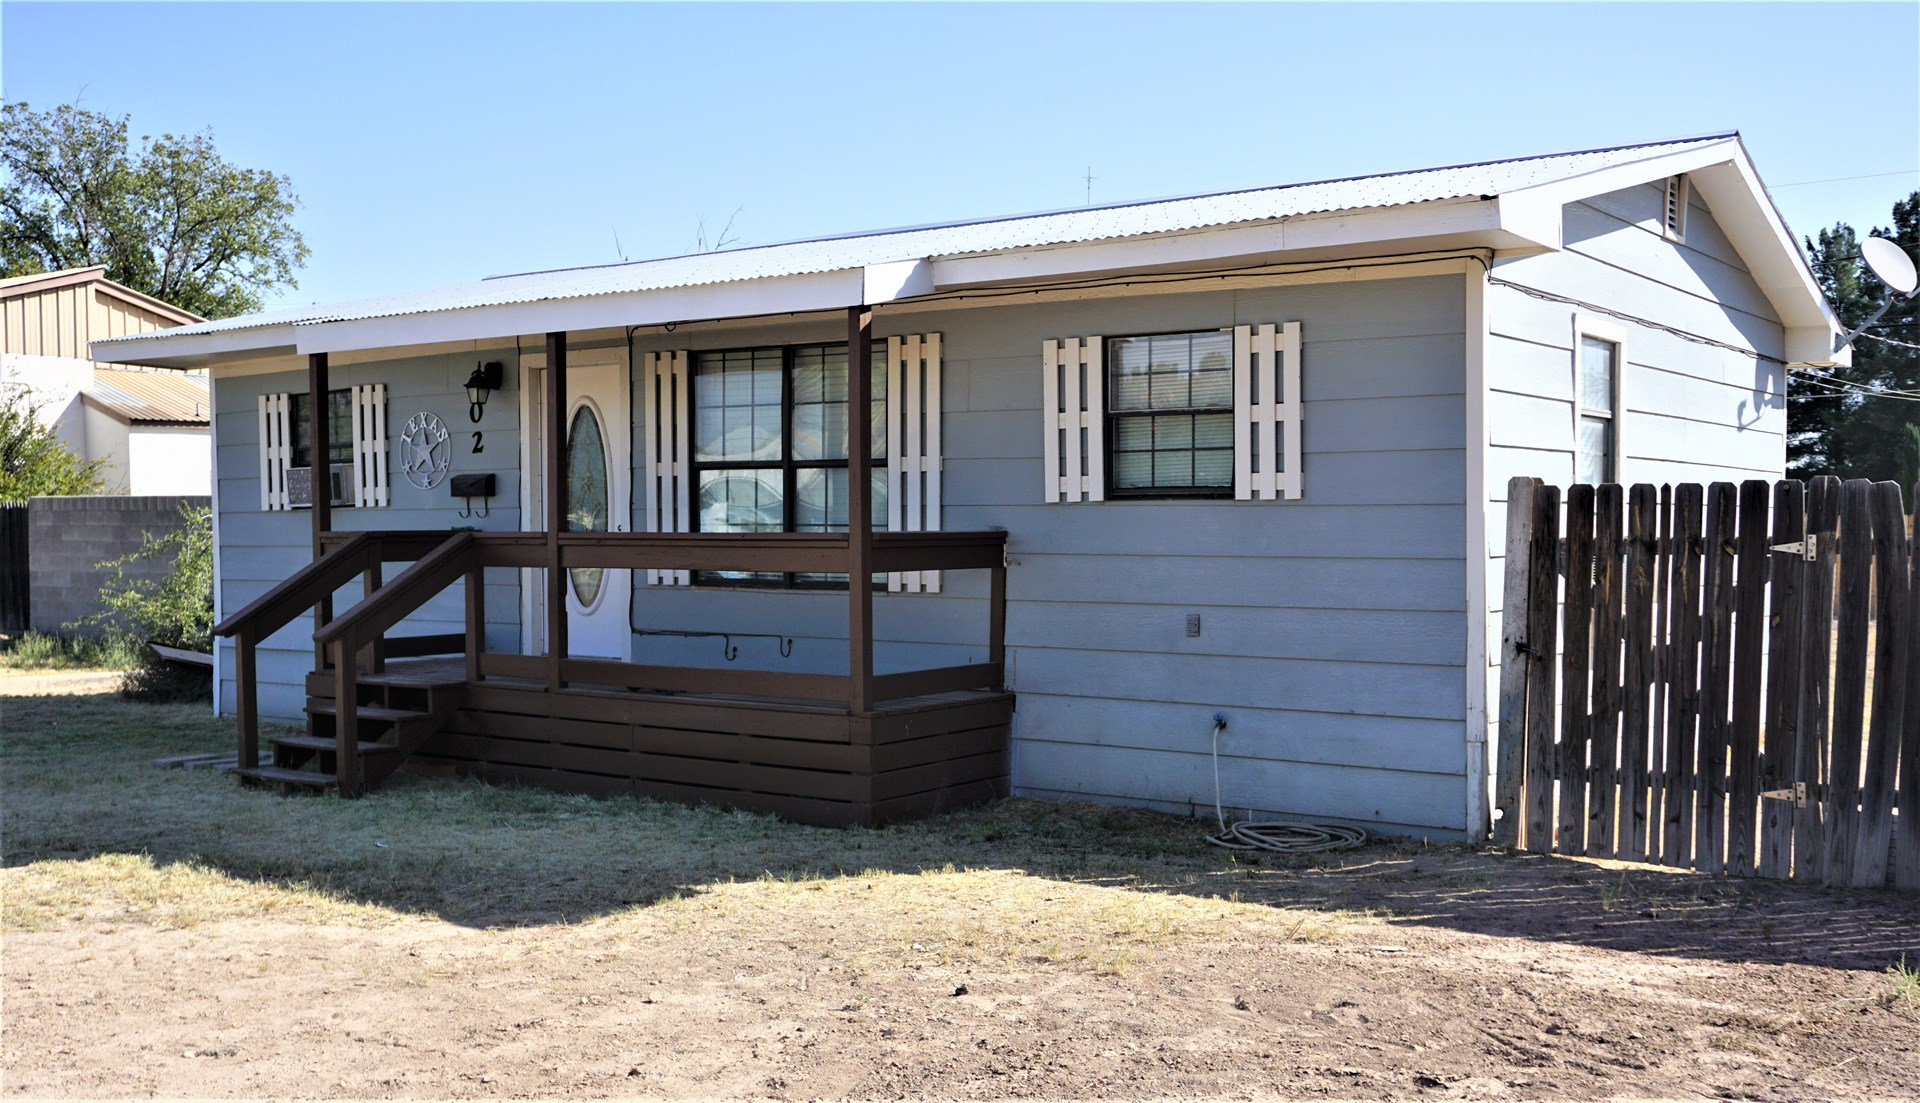 ADORABLE 2BR HOME FOR SALE IN FORT STOCKTON, TX